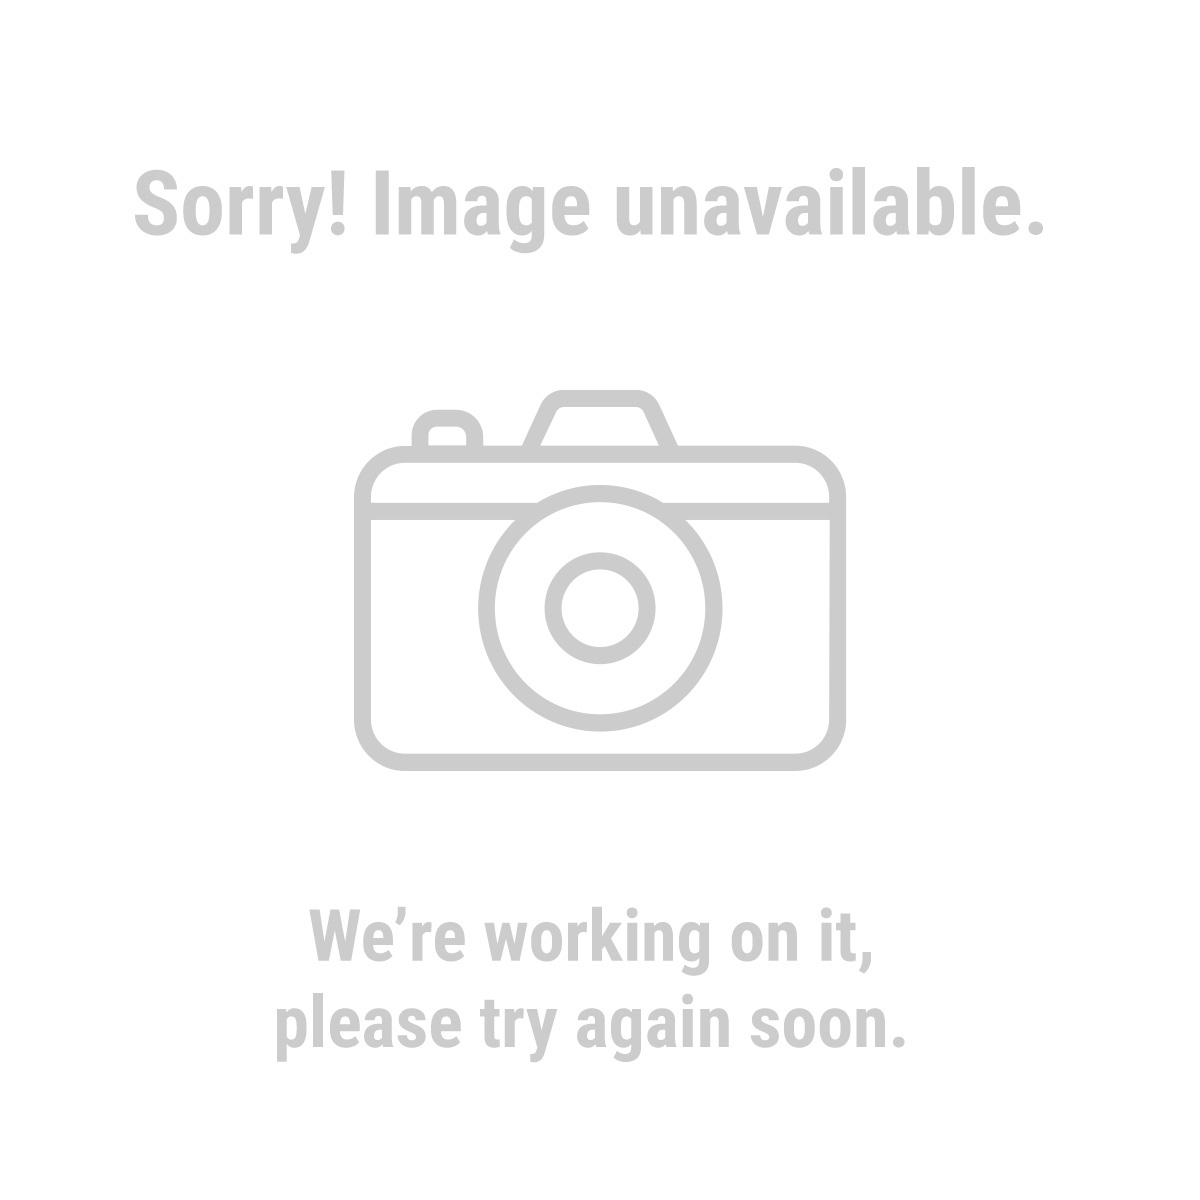 jig saw tool. 3.2 amp variable speed jig saw tool